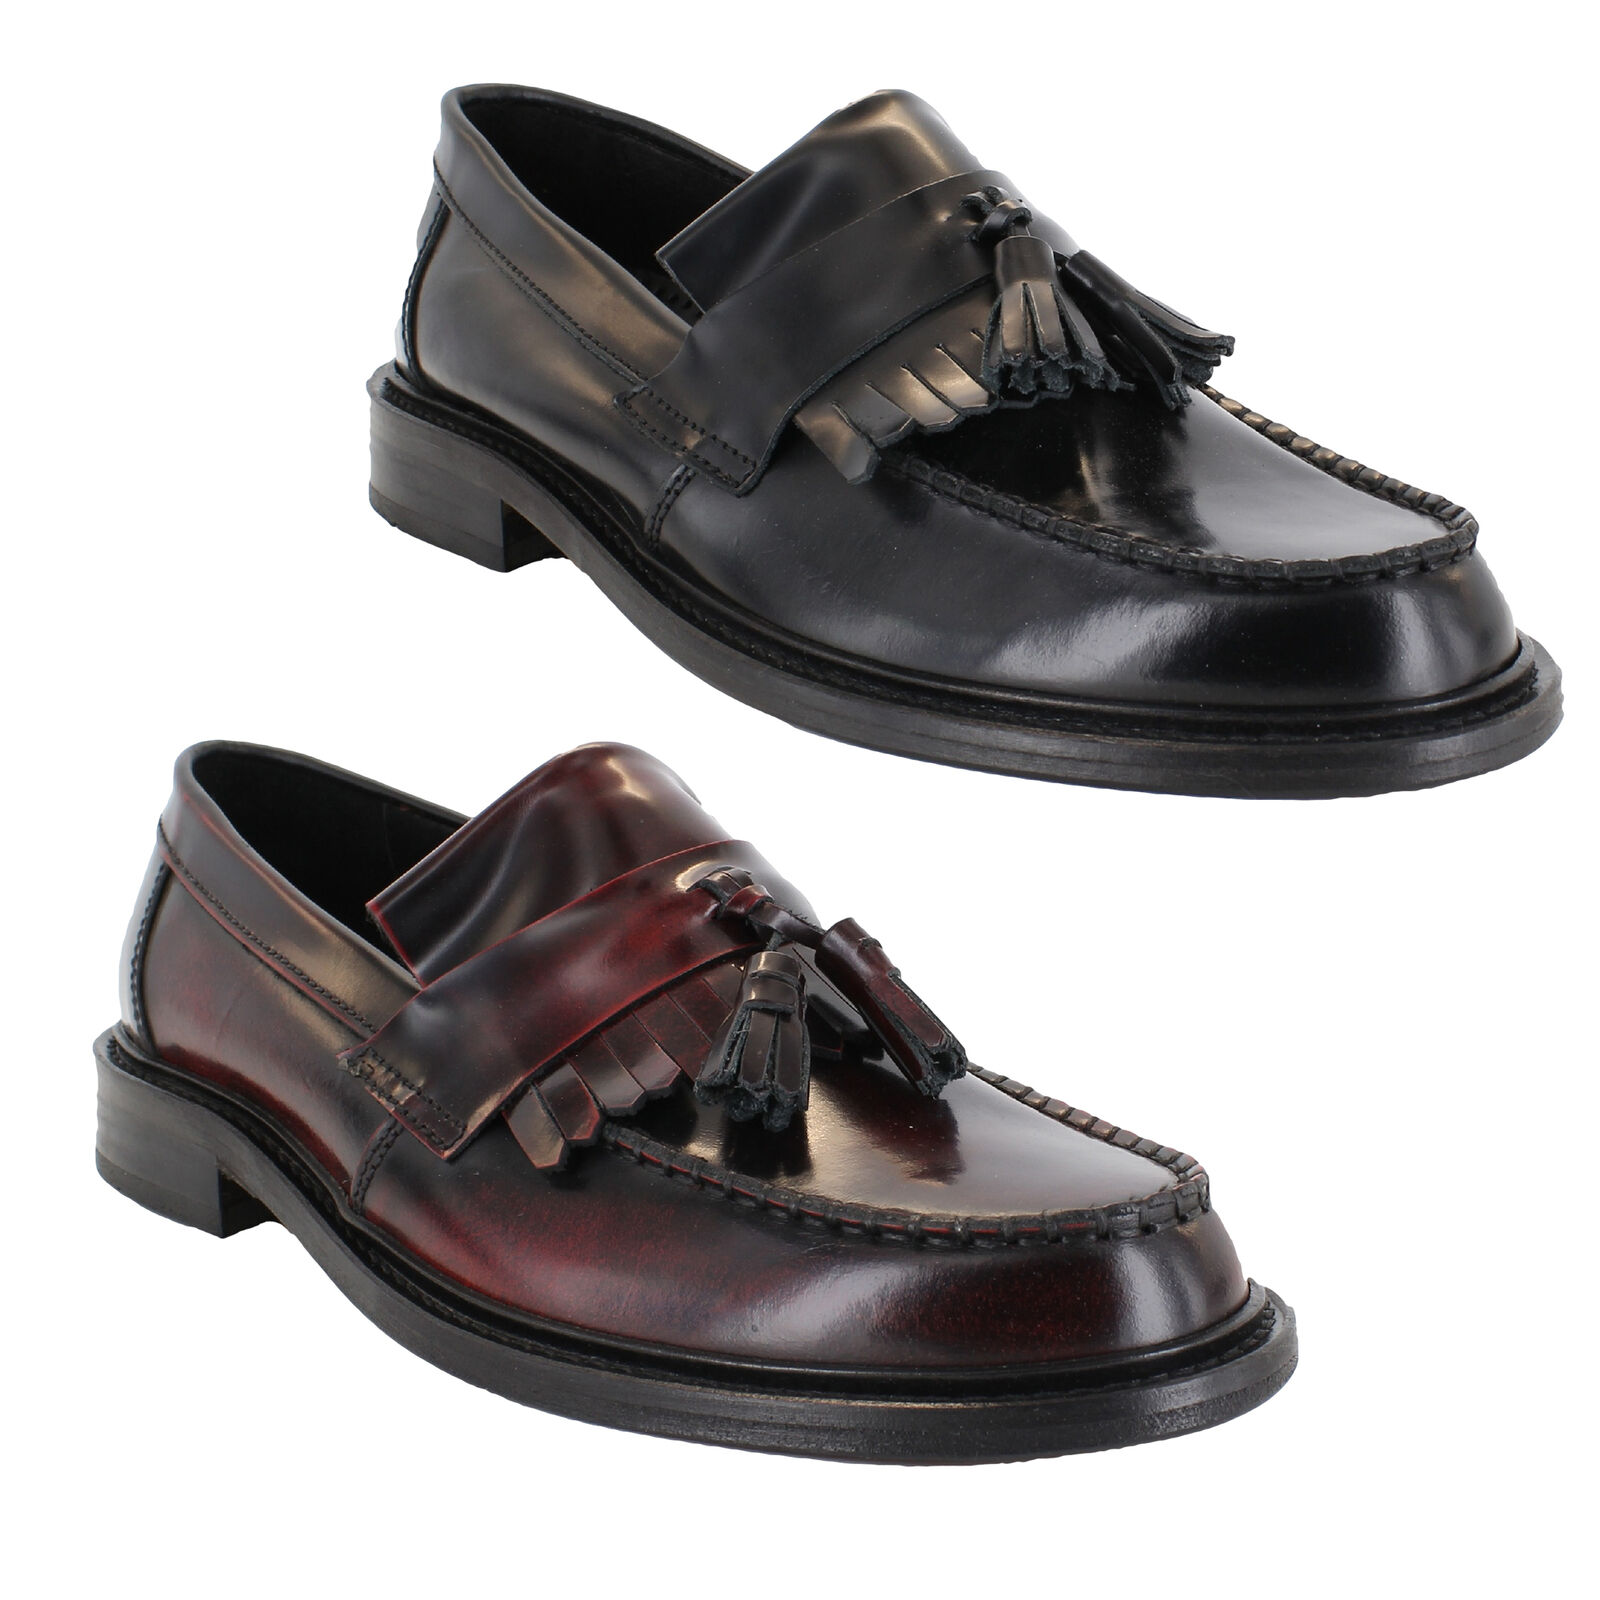 Mens Womens IKON Selecta Ska Mod Leather Tassle Loafers shoes Sizes 7 to 12